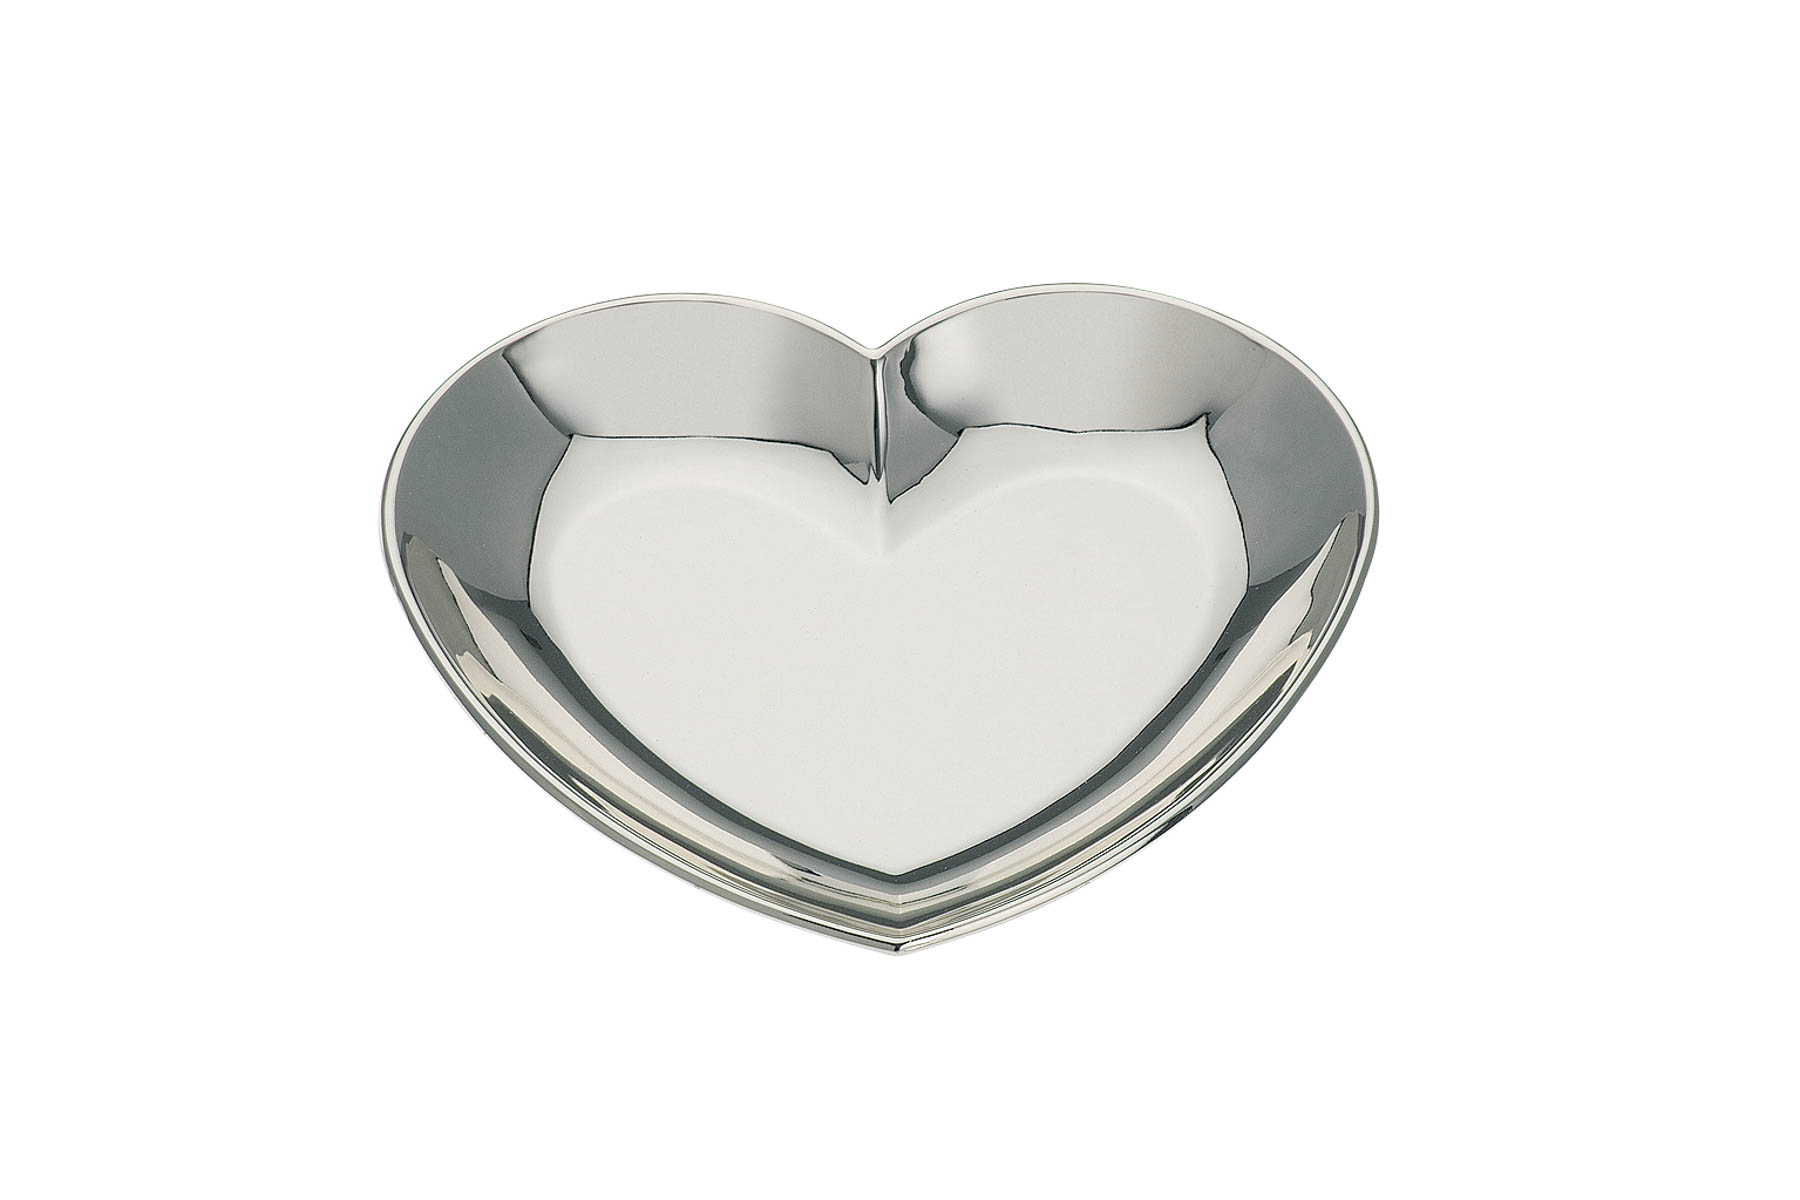 Dish Heart Shape